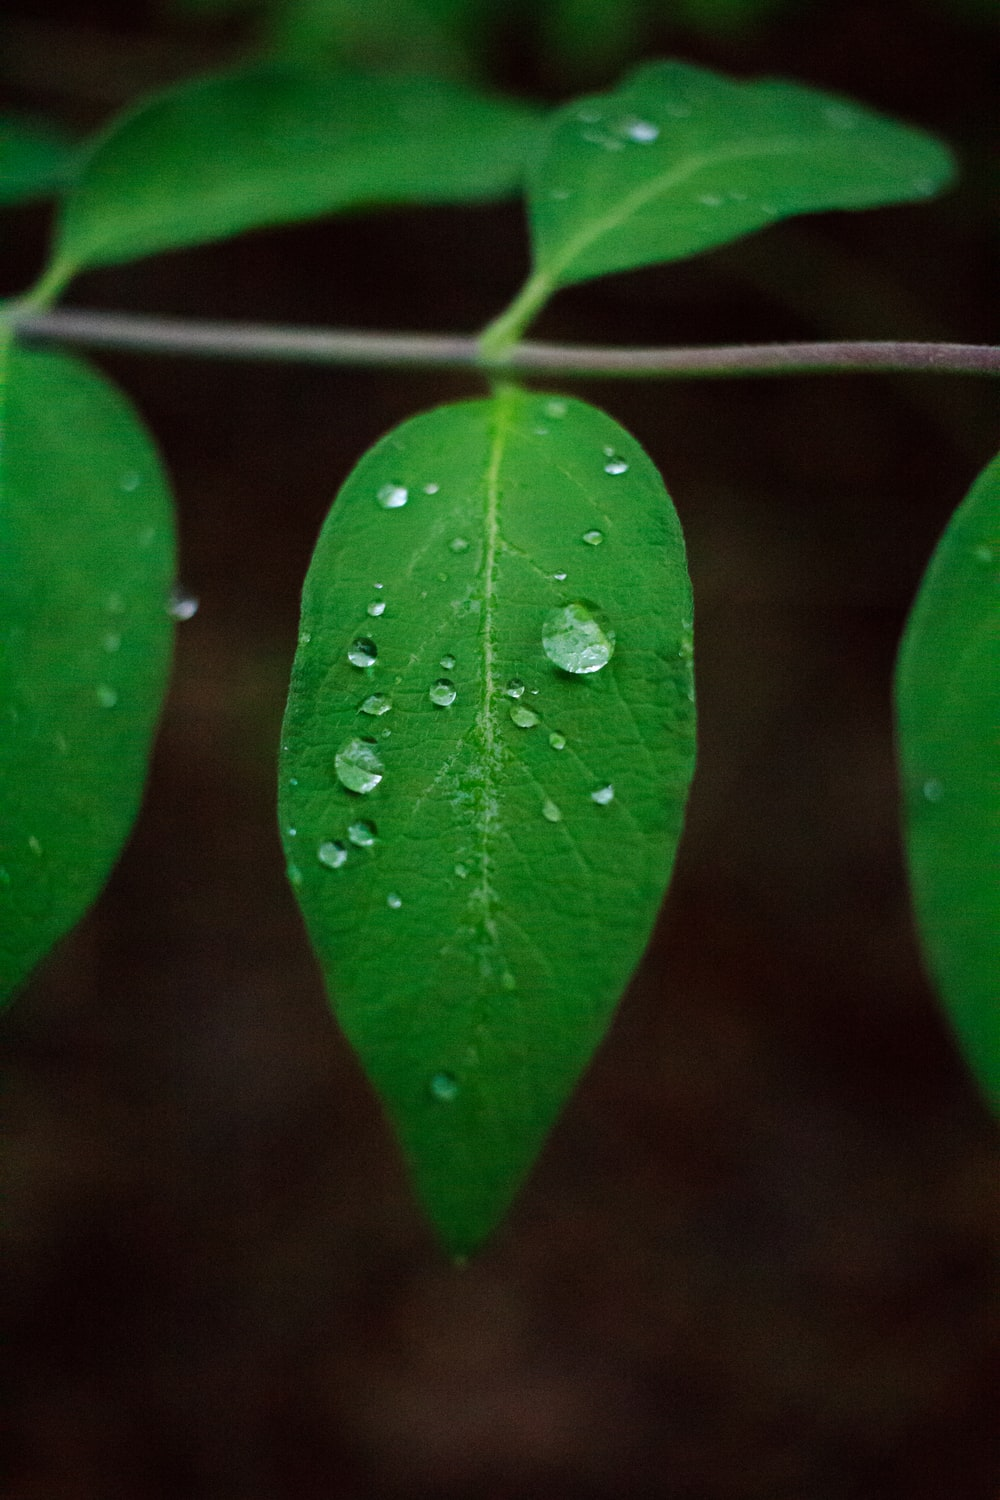 water droplet on green-leafed plant